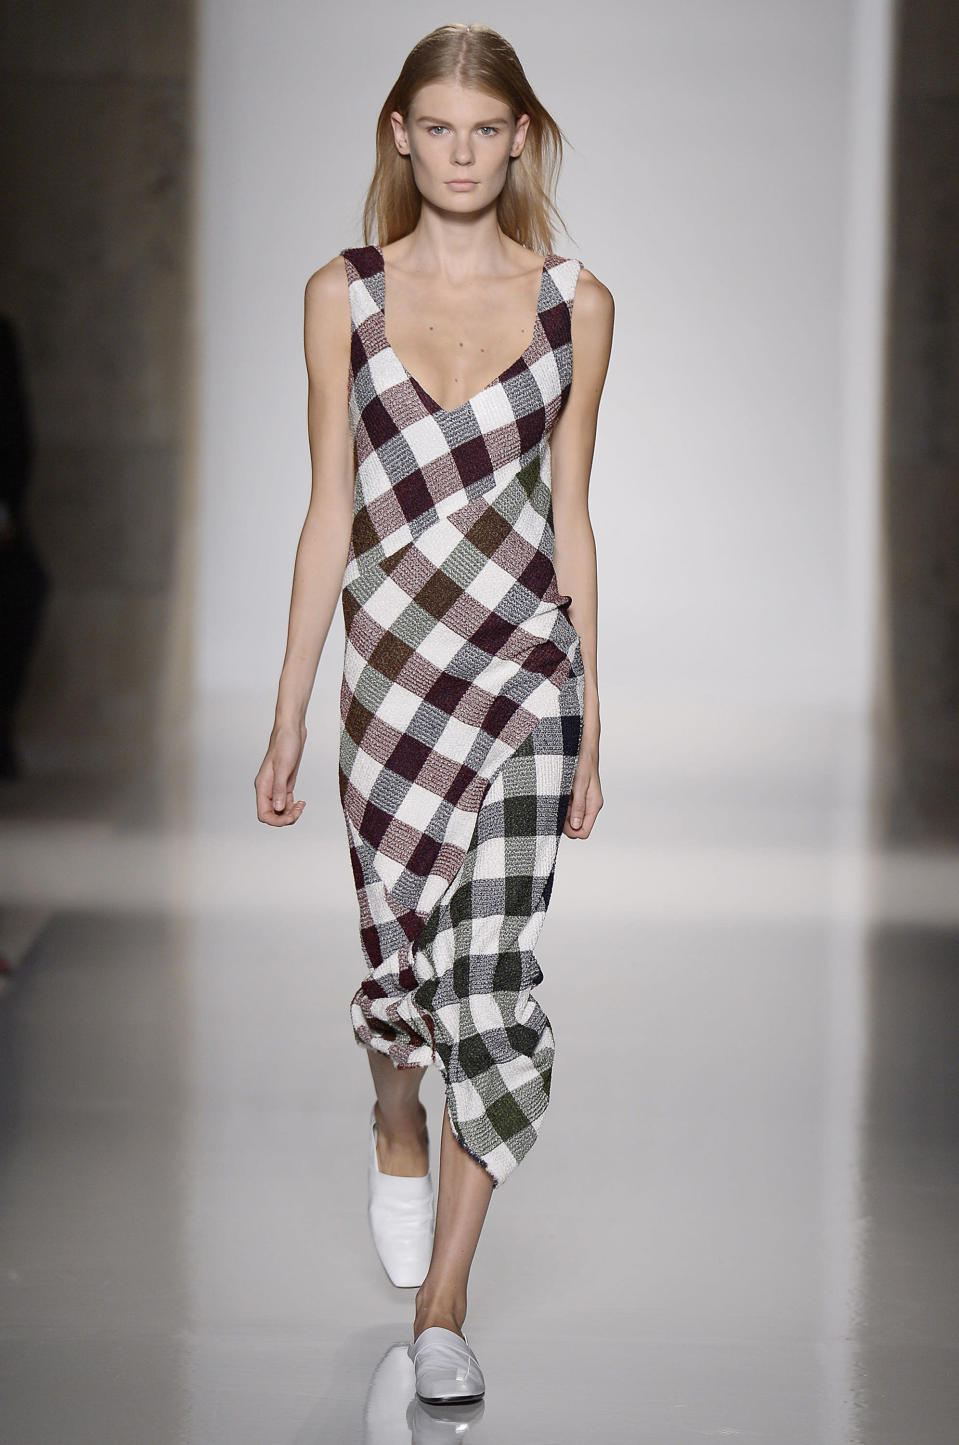 <p>A far cry from Beckham's now-famous noughties style, models were clad in a oversized checks (and oversized looks) for her SS16 show. Gone were heels in favour of white mannish mules while structured suits took the place of her once go-to dresses. <em>[Photo: Getty]</em> </p>